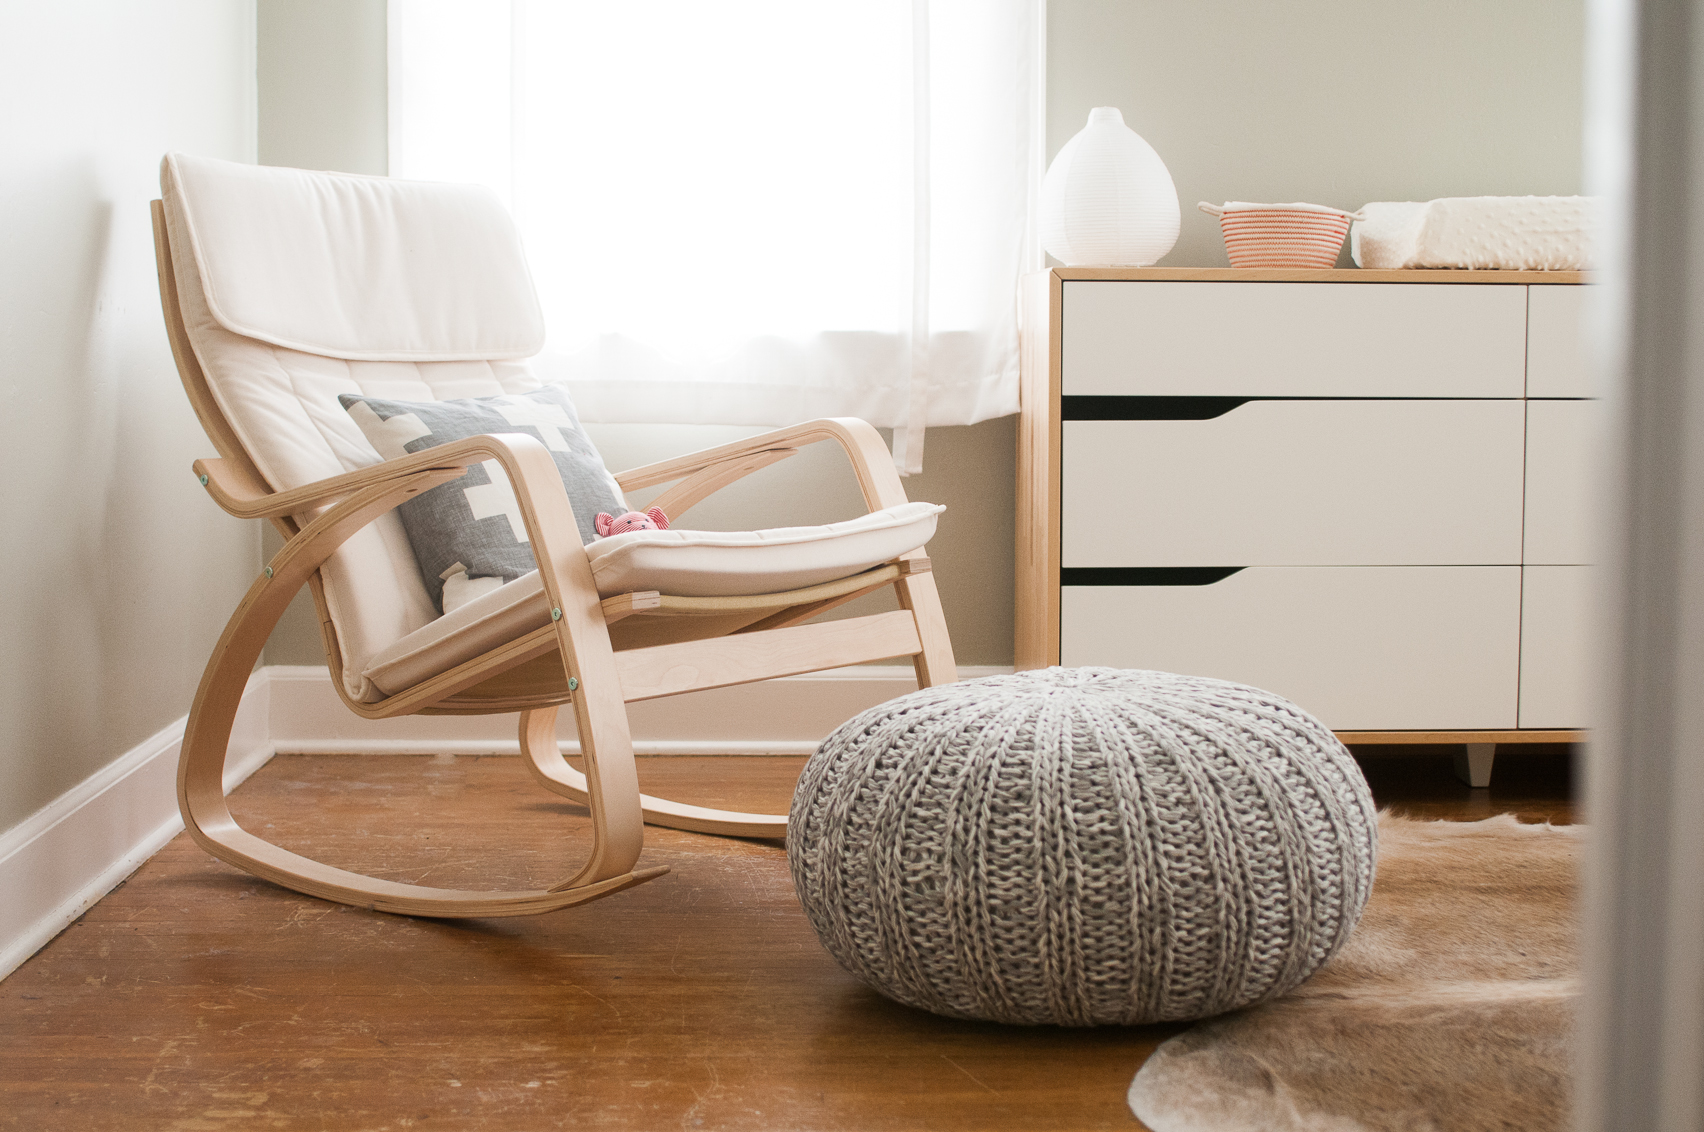 The rocking chair for nursery must have features